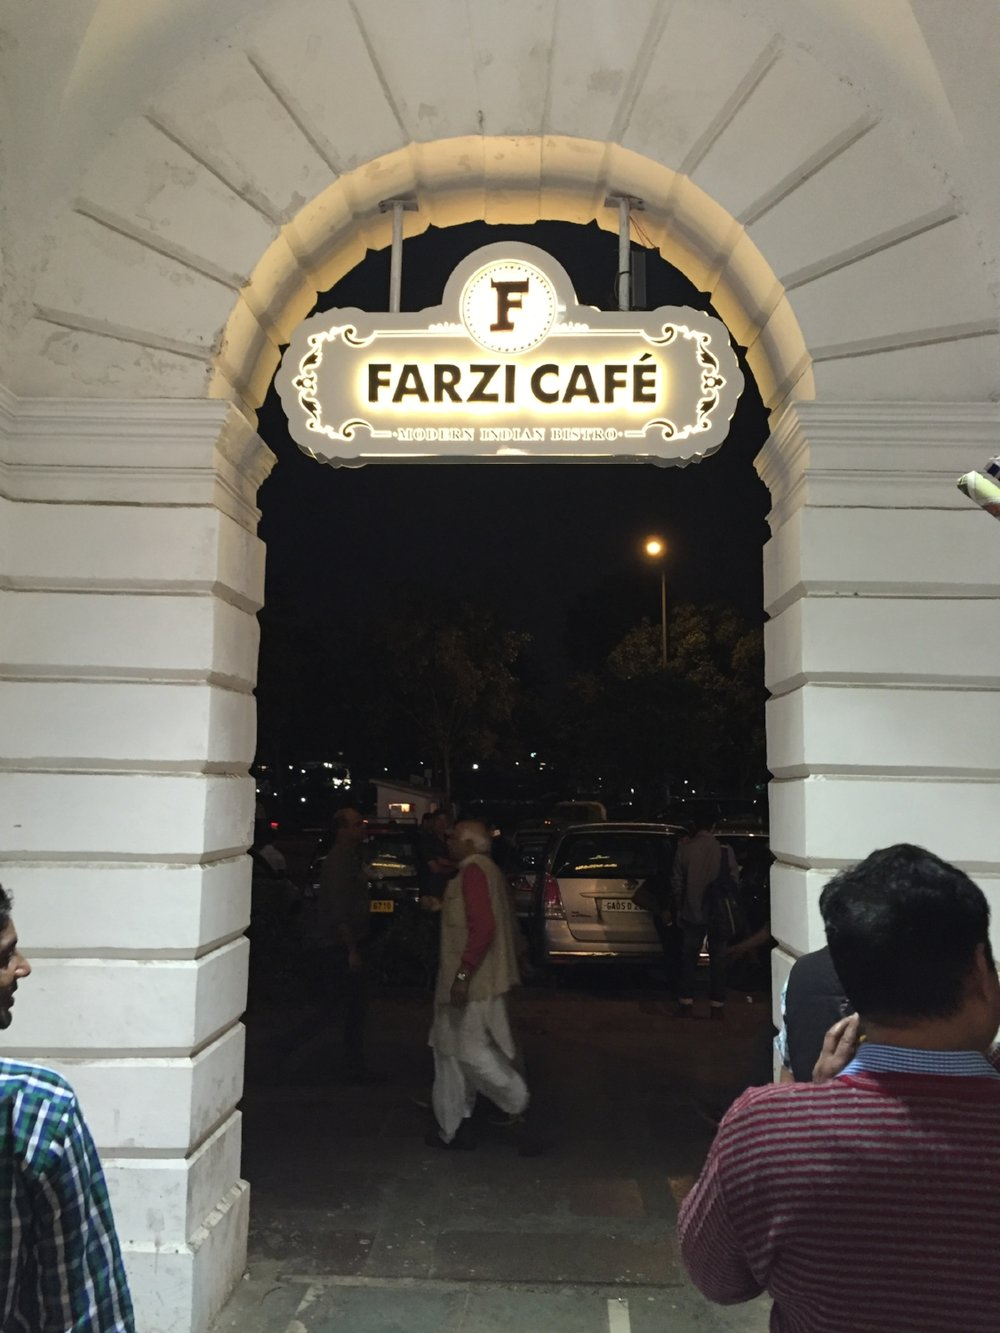 Farzi Cafe in Delhi's Connaught Place.